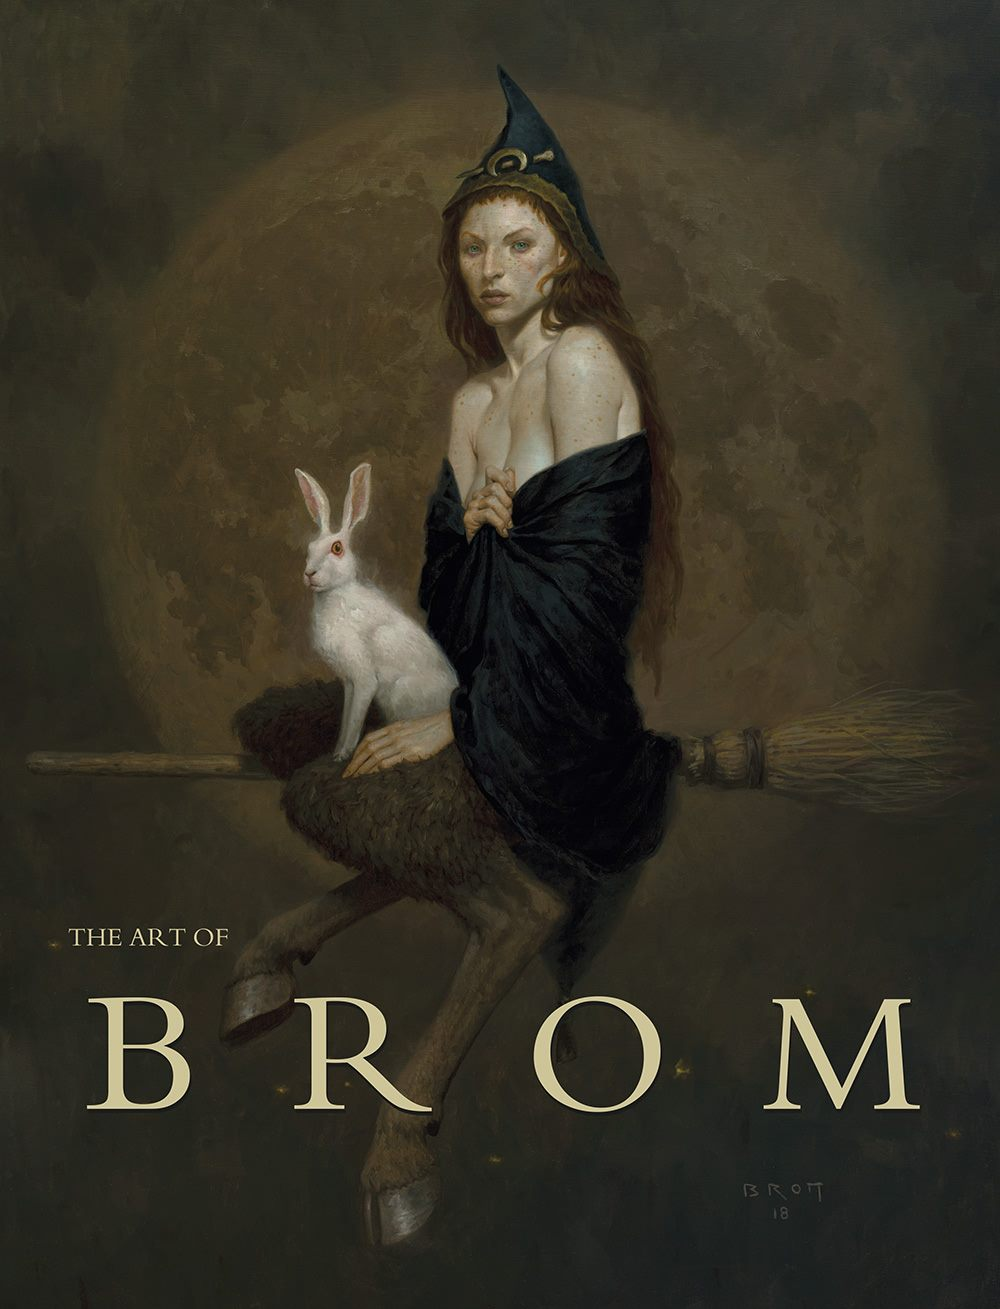 art of brom - Now available!Haunting, bizarre, beautiful and macabre—often all in the same work—Brom's dramatic and powerful paintings have vividly brought to life entire worlds and placed us face-to-face with the wicked, the ungodly and the divine. This lavishly produced retrospective contains over 200 major works spanning Brom's thirty-year career, highlighting his groundbreaking art in games, novels and film. It includes many previously unpublished images and an insightful autobiography allowing a rare glimpse into the soul and mind of this dark fantasy master.More details and order info here: Flesk Publication